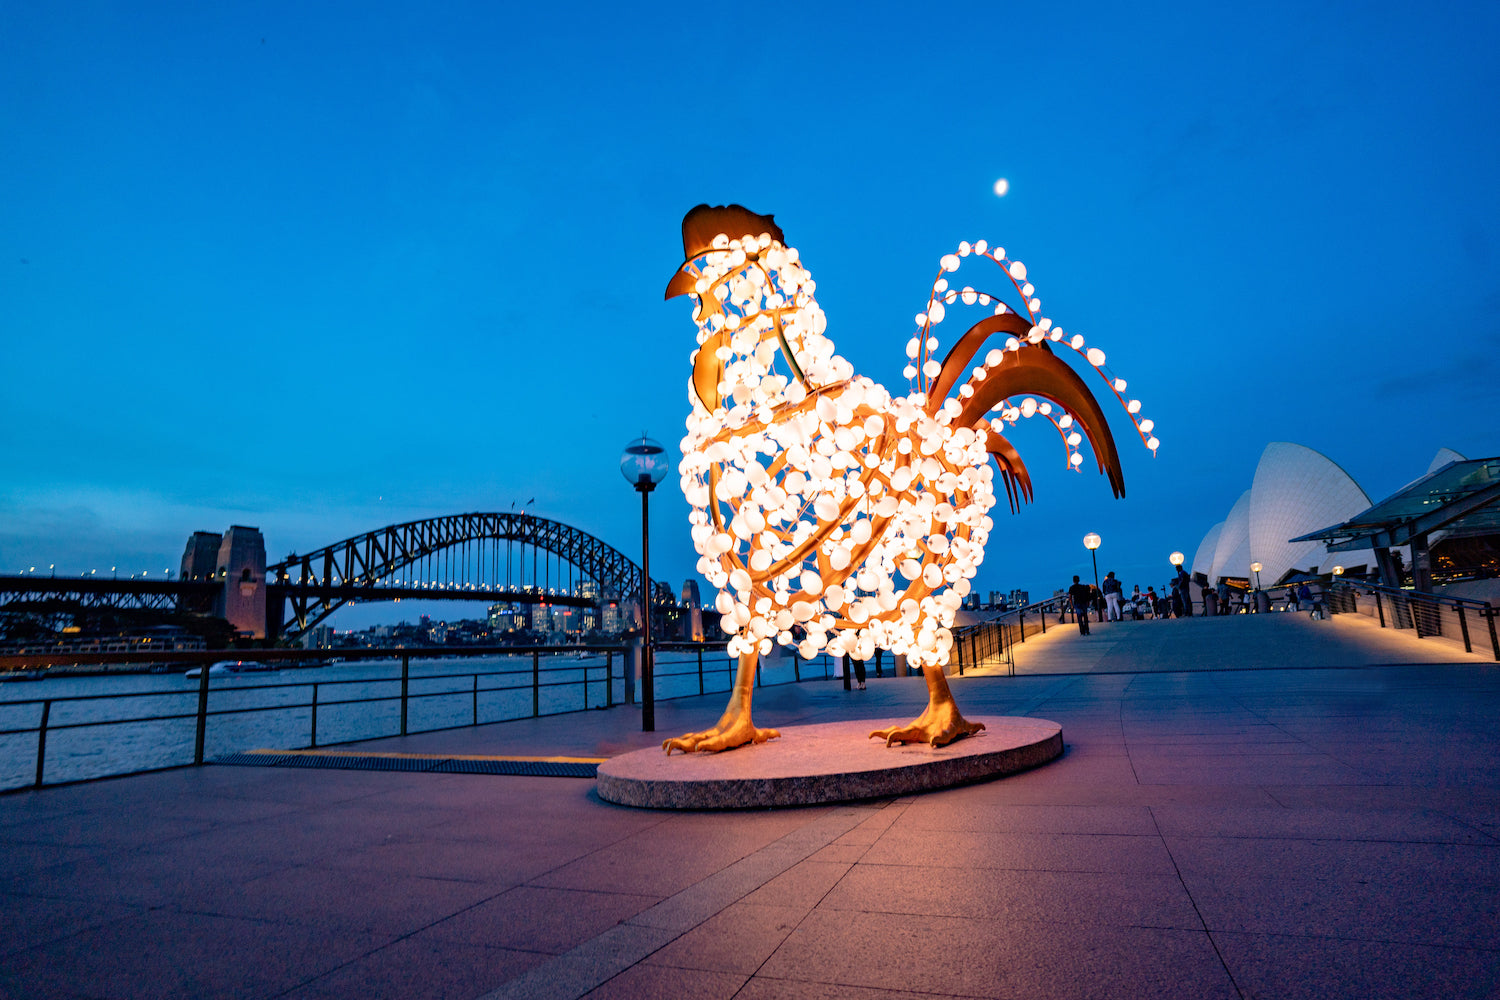 The Rooster art installation by Valerie Khoo